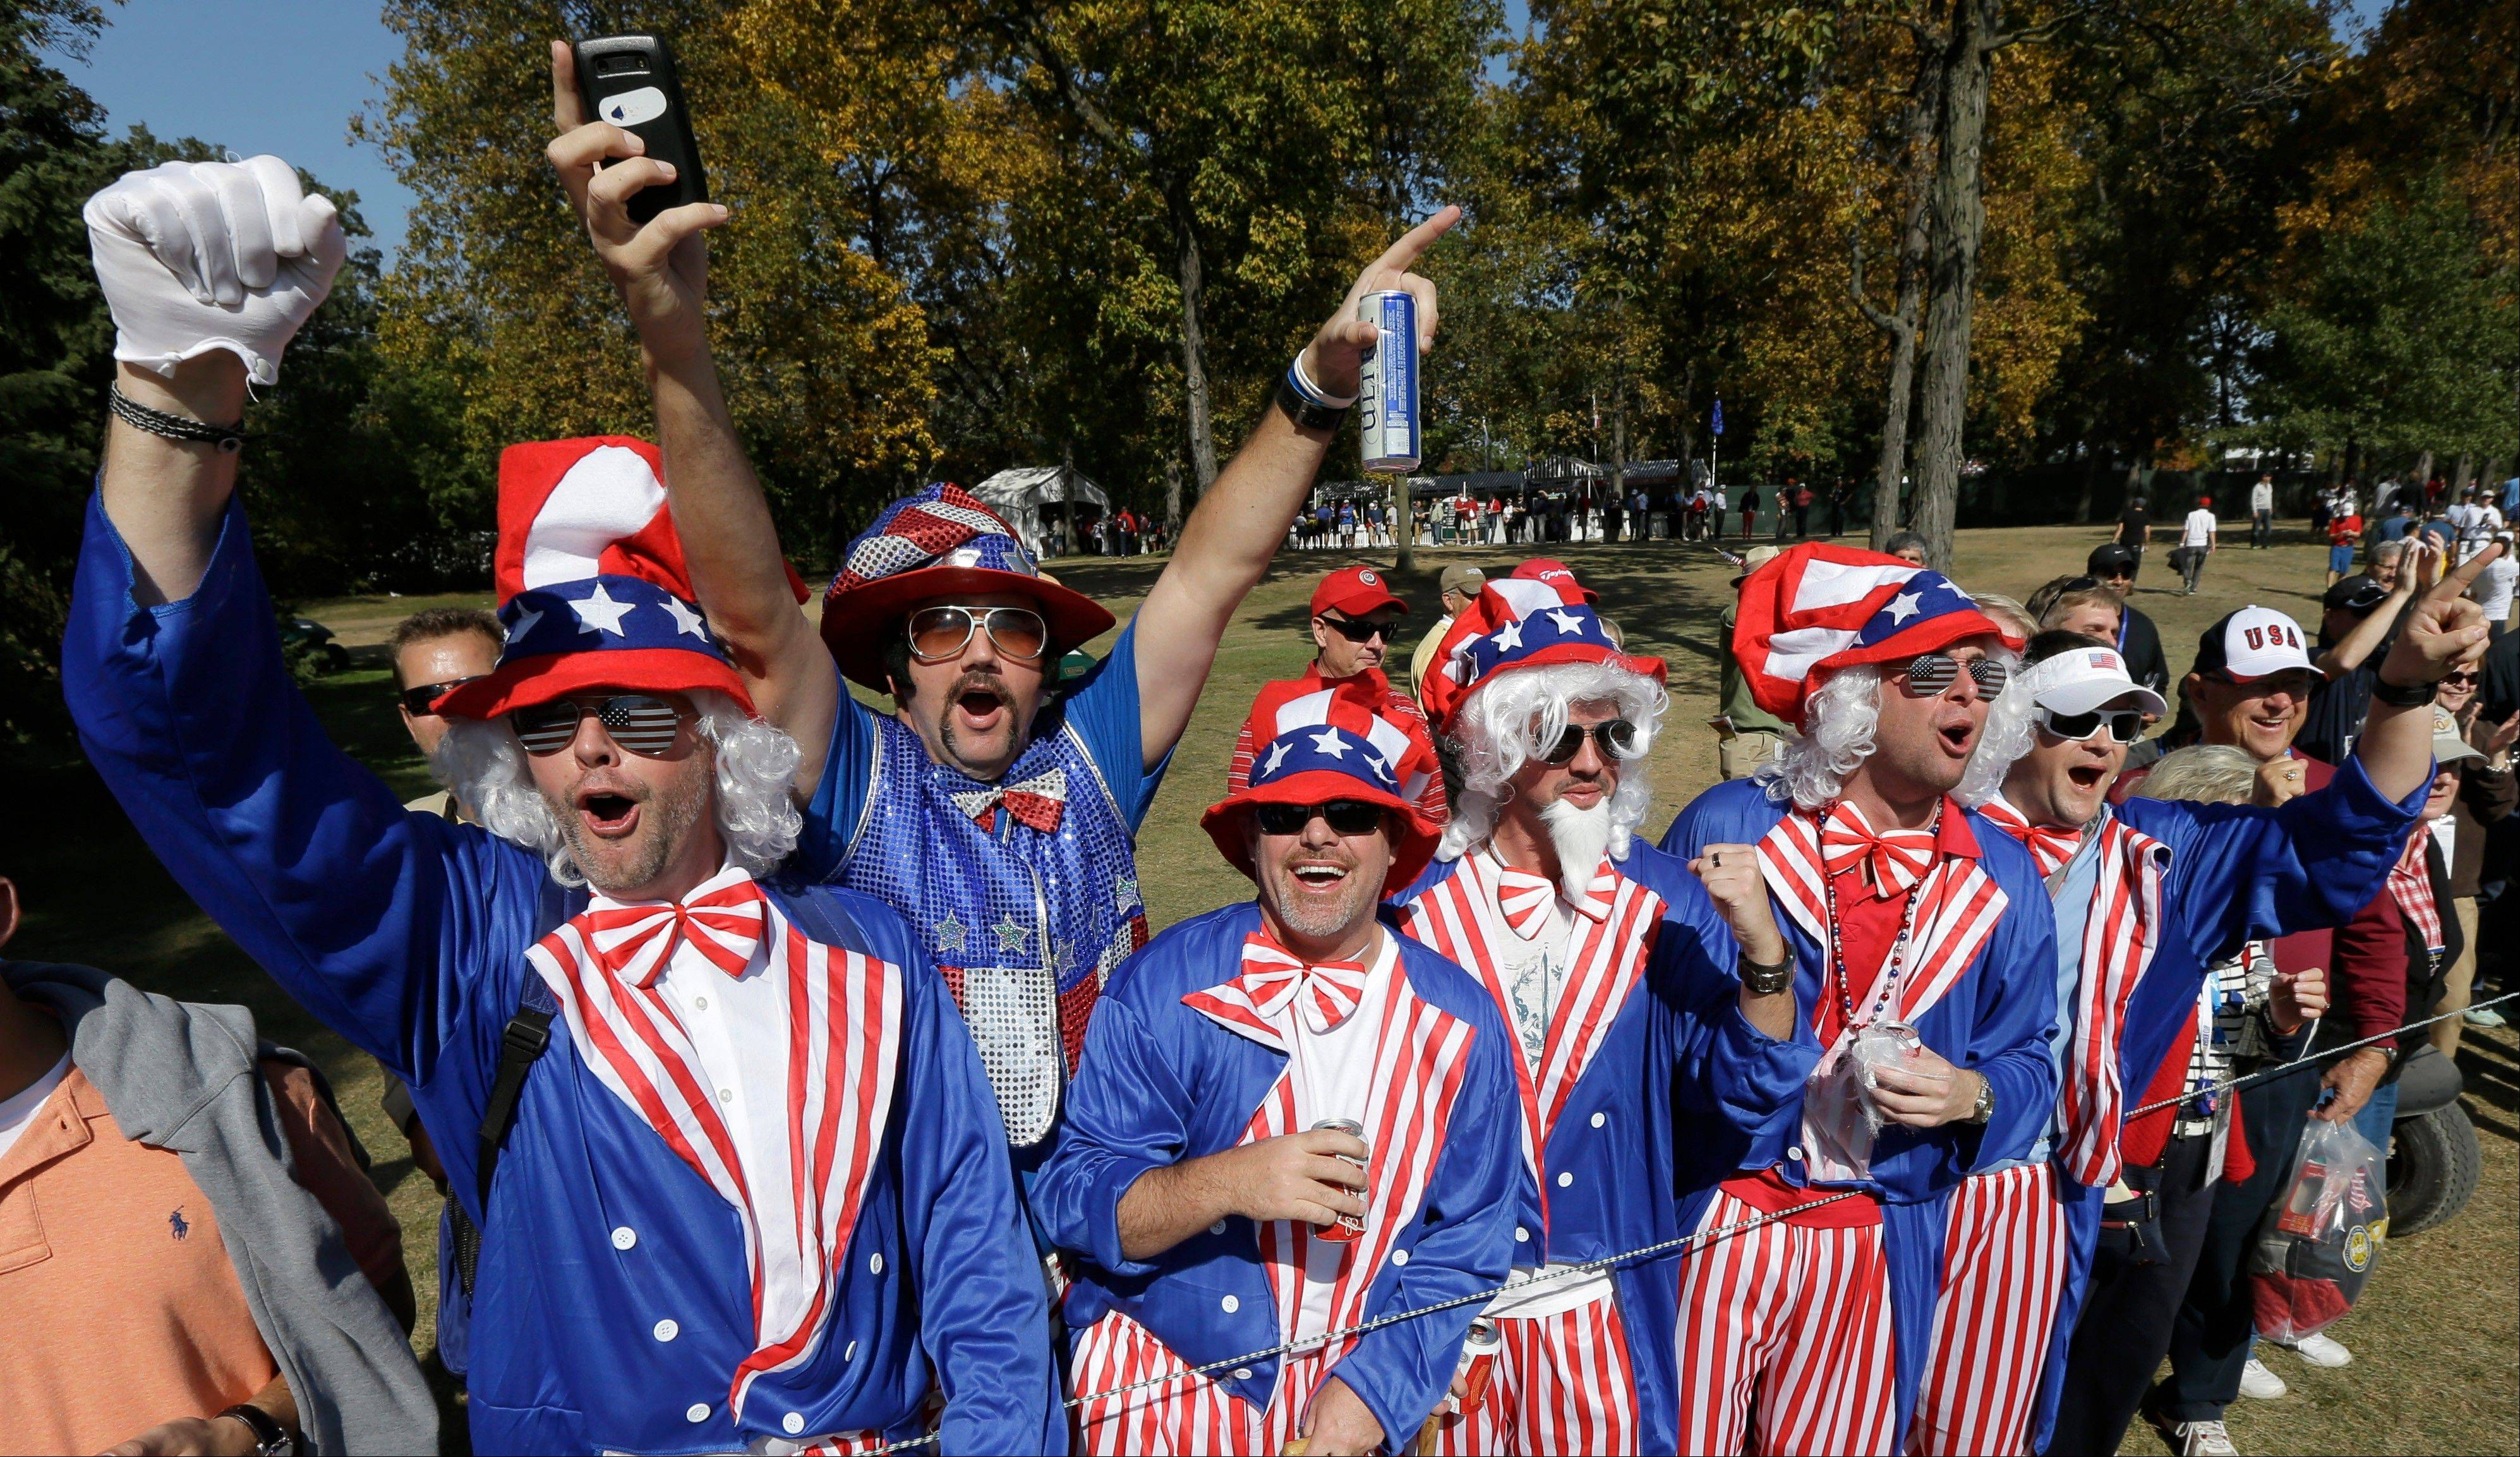 Fans cheer on the 16th hole during a foursomes match at the Ryder Cup on Saturday.